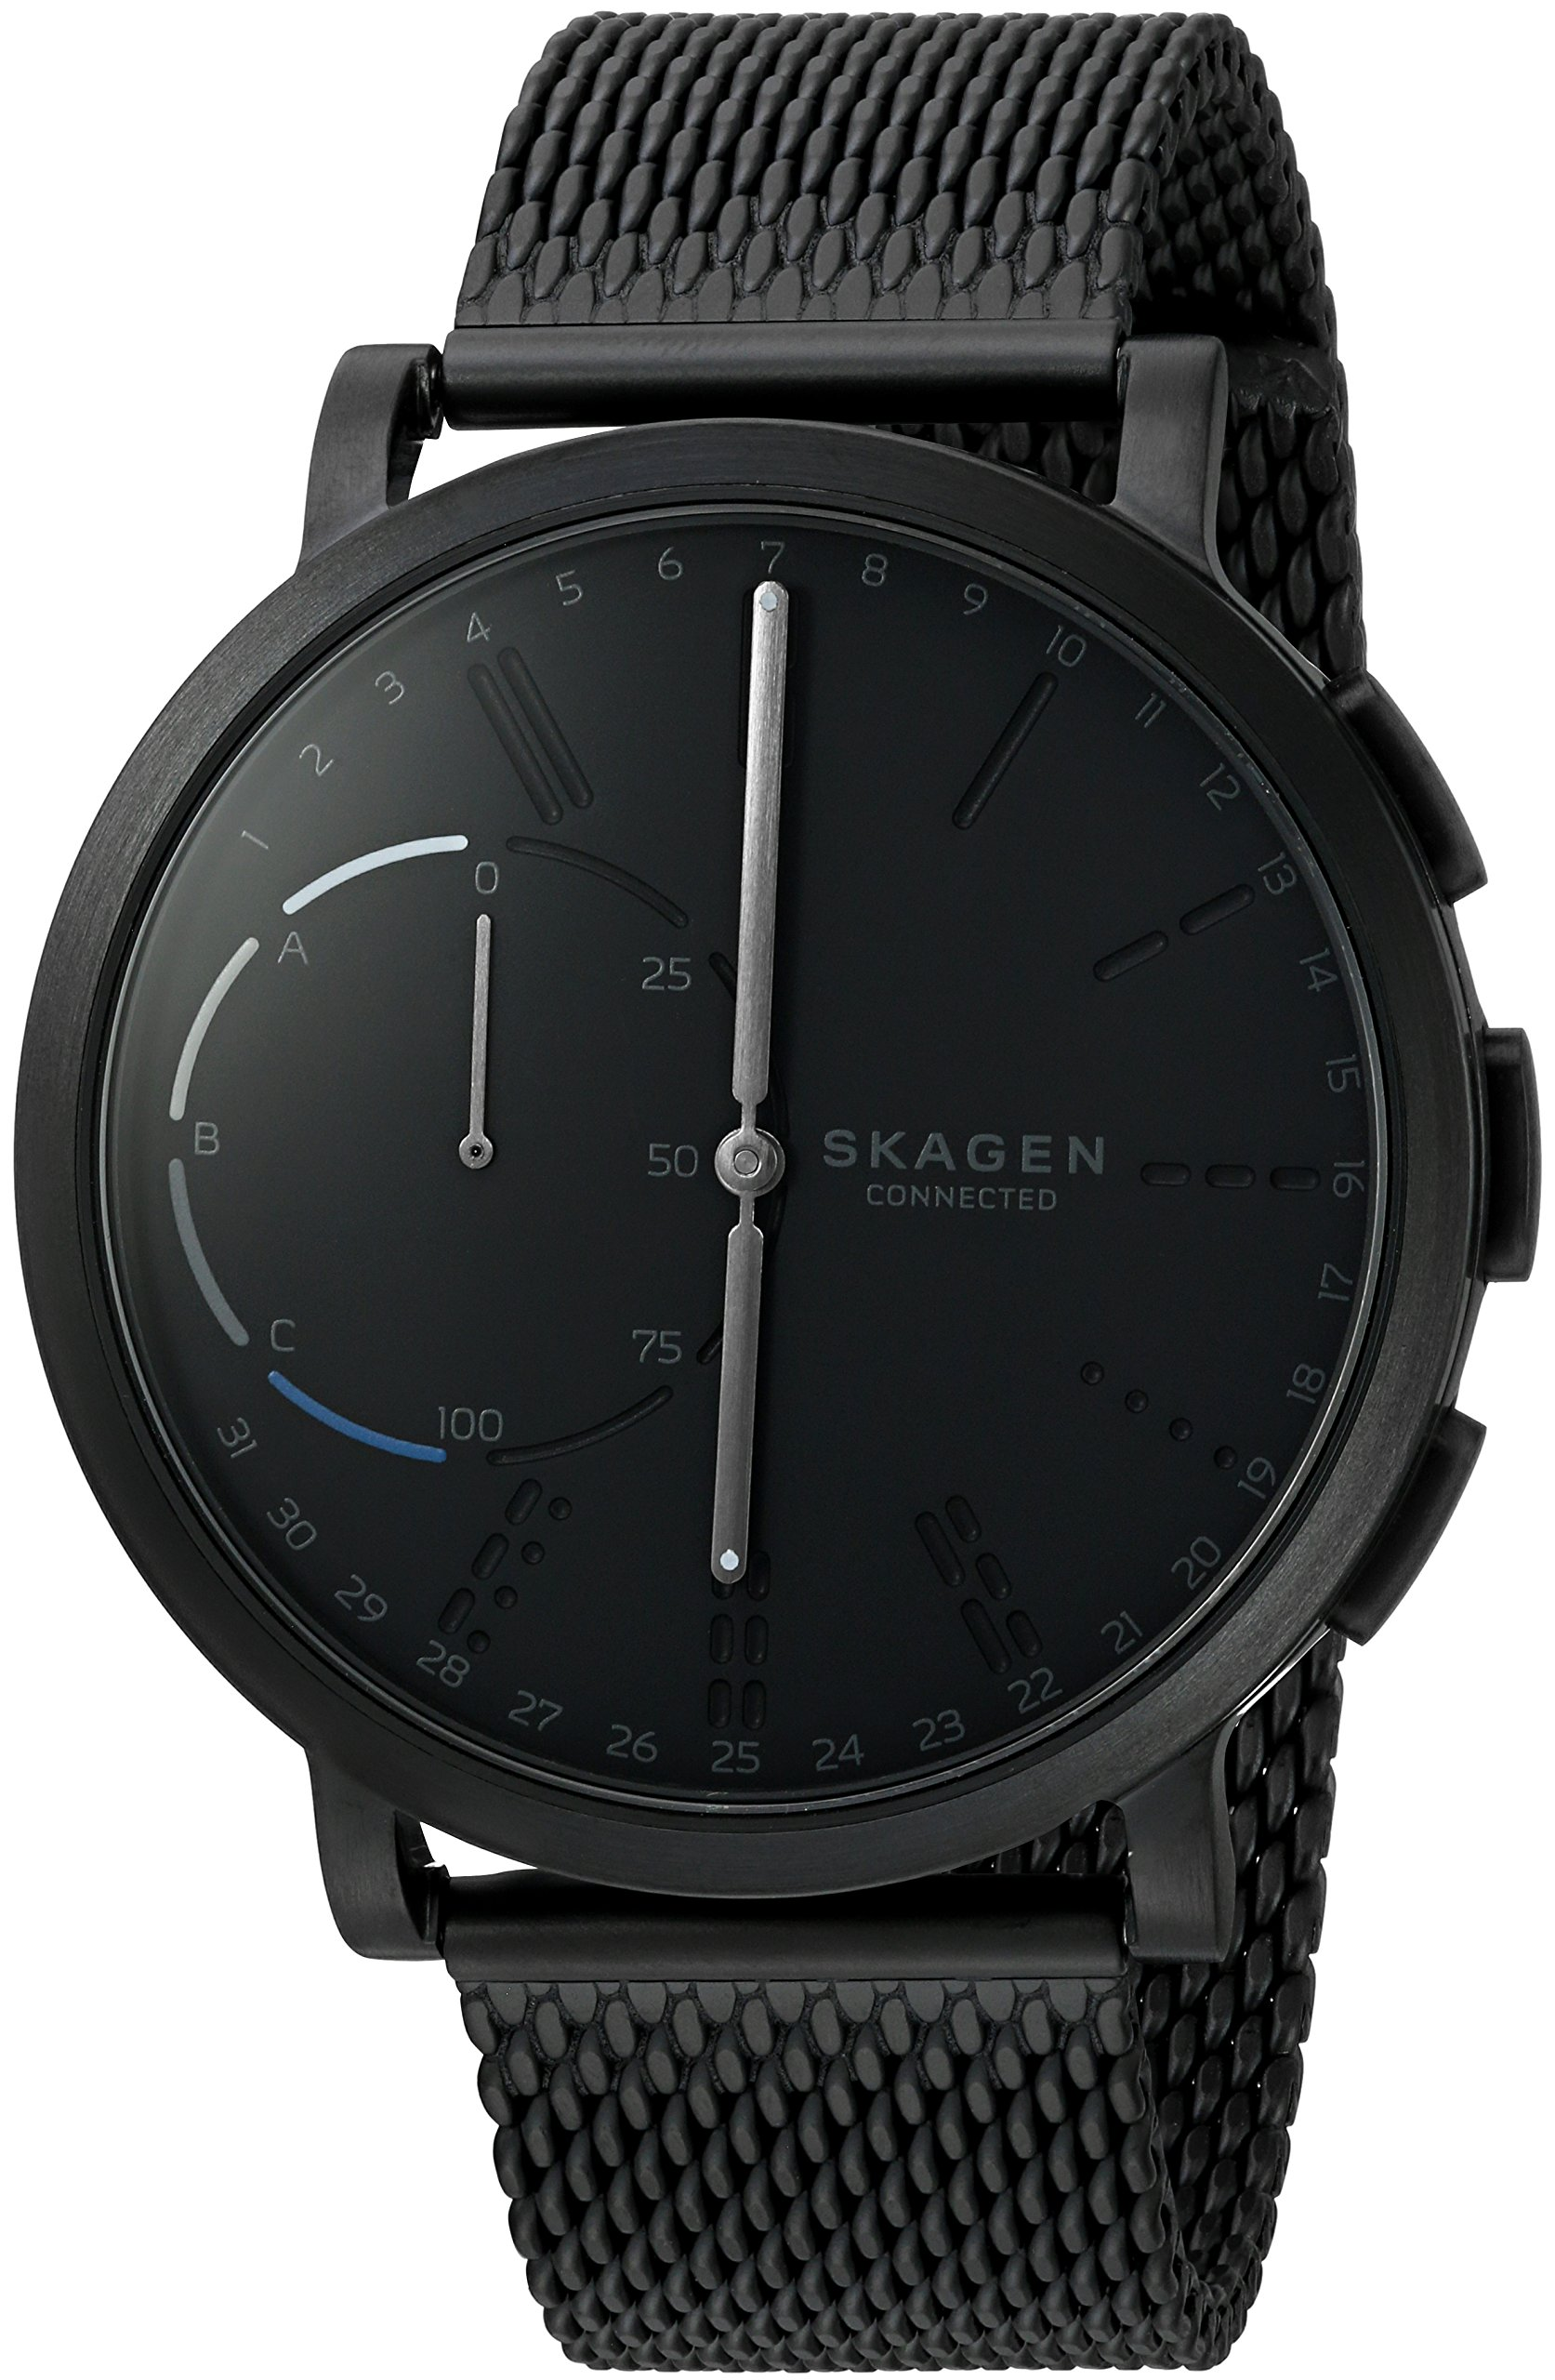 Skagen Connected Men's Hagen Stainless Steel Mesh Hybrid Smartwatch, Color: Black (Model: SKT1109)